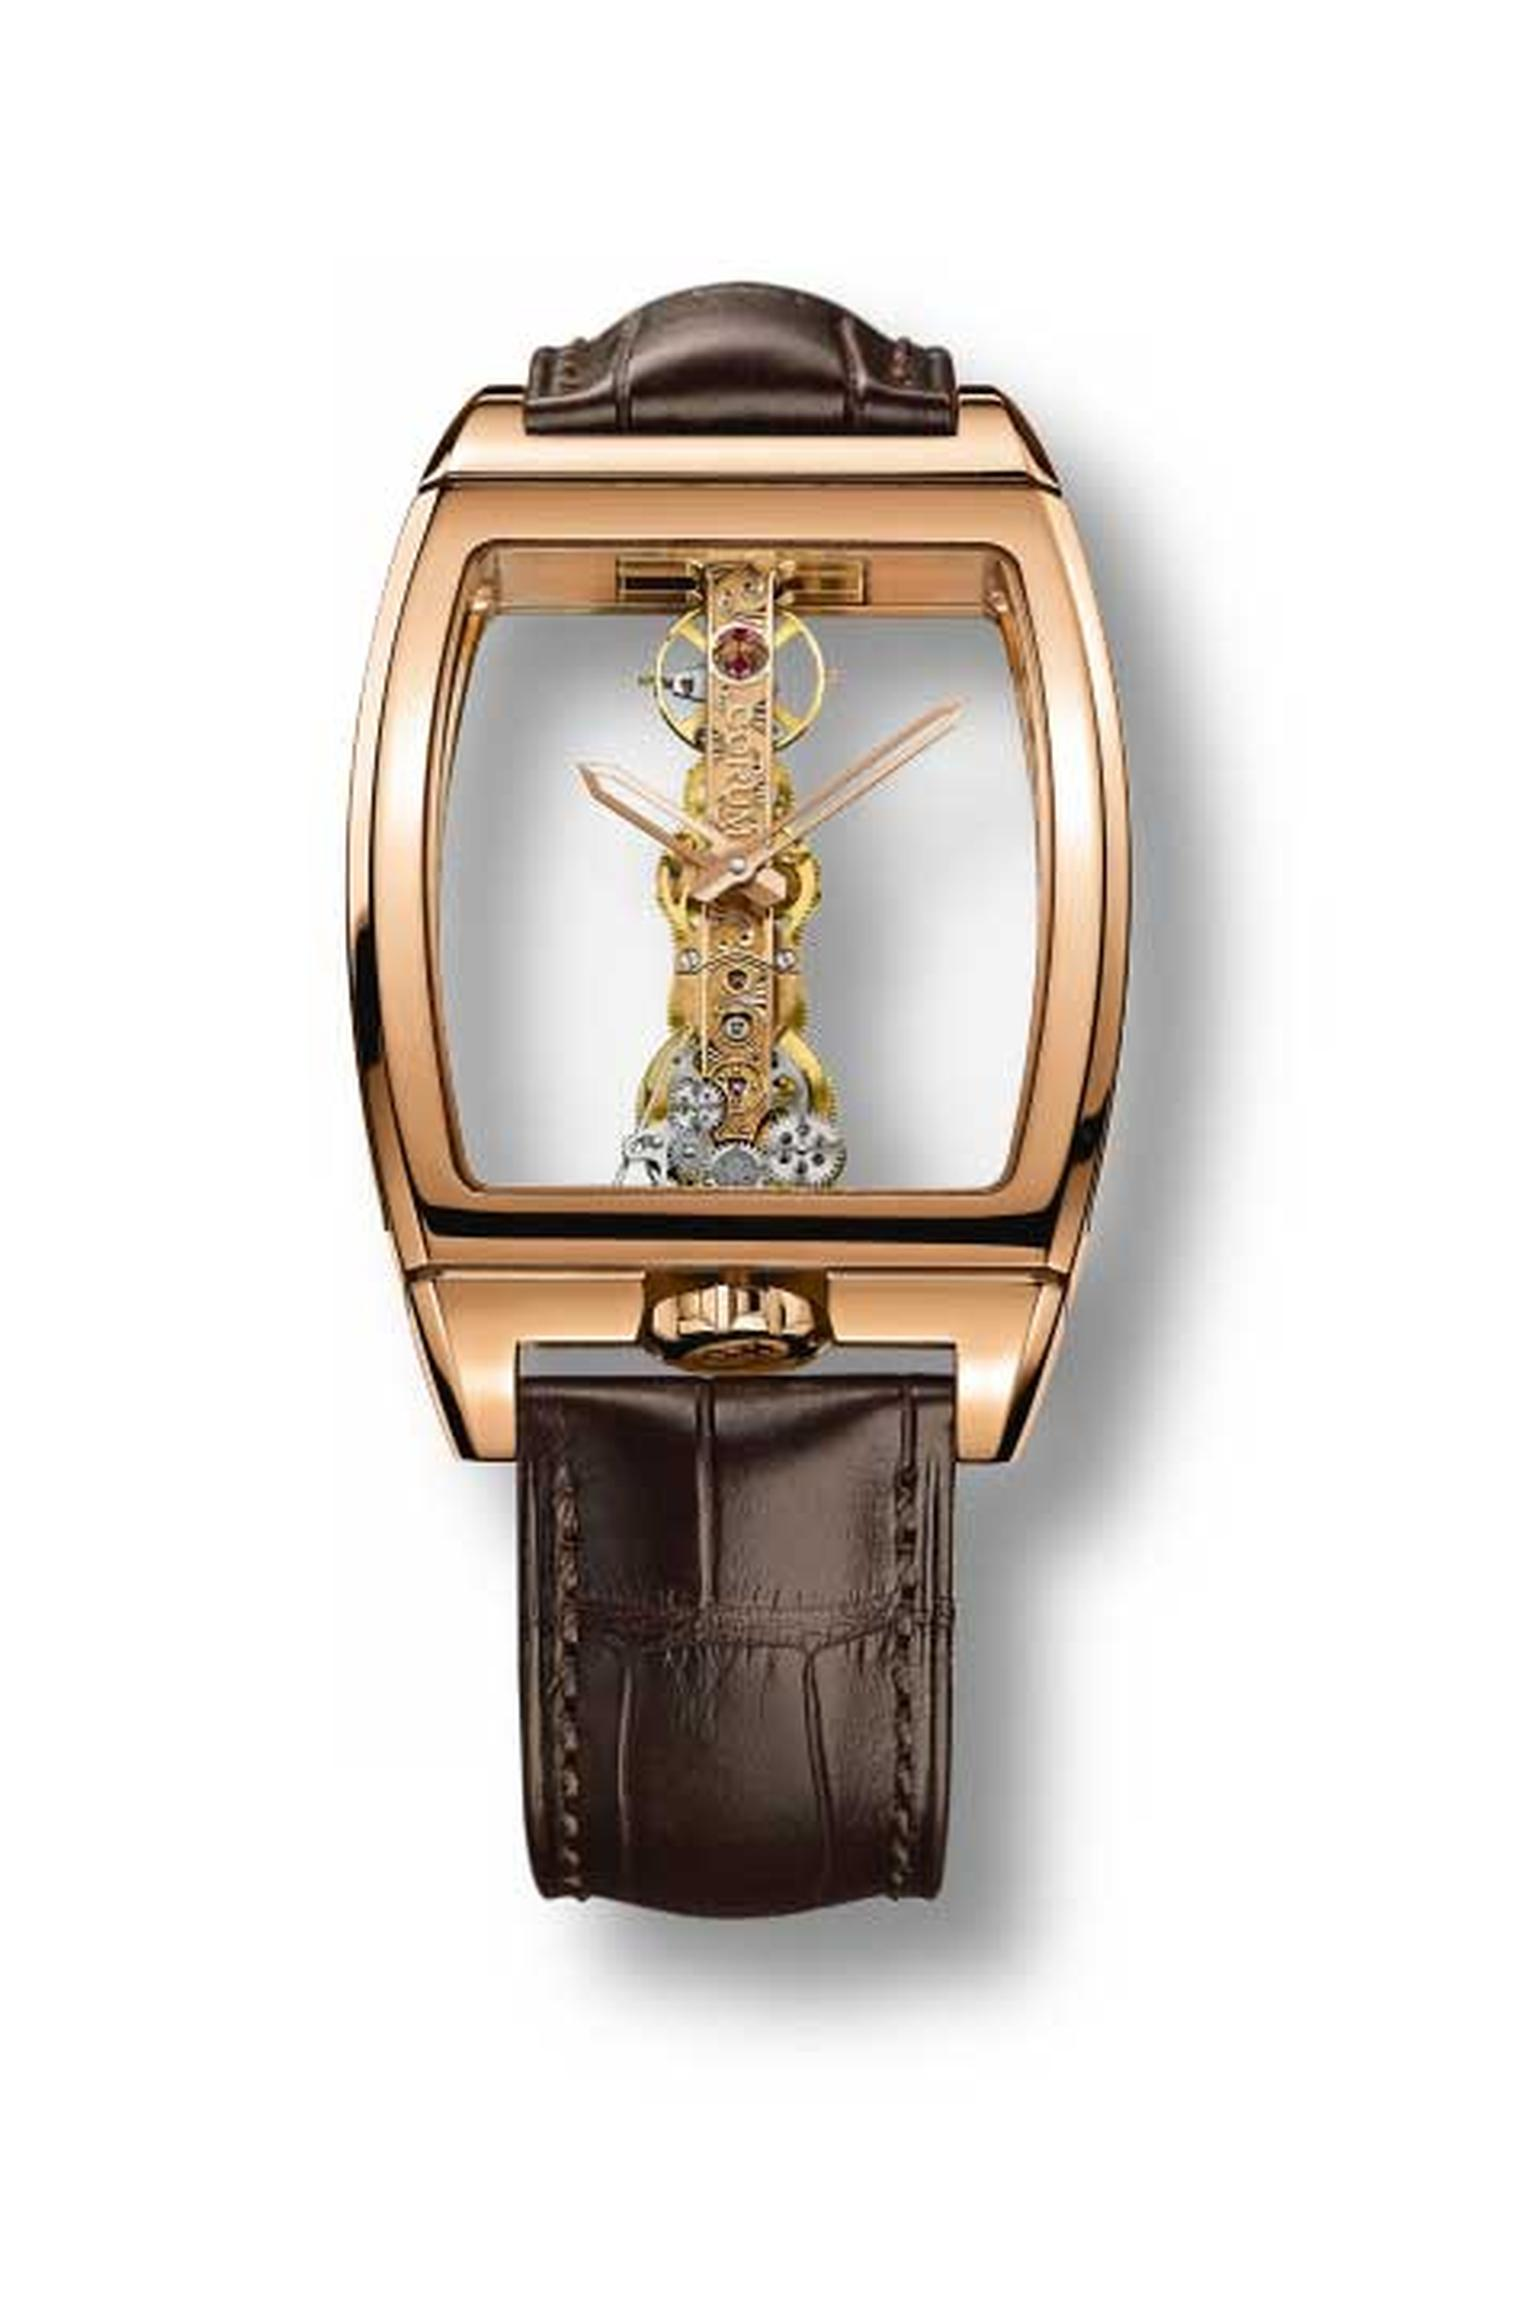 The Corum Golden Bridge watch was the world's first baguette movement with linear gear trains mounted in a totally transparent case. Instead of having a round-shaped movement tucked neatly into a round case, the Golden Bridge had its movement mounted on a